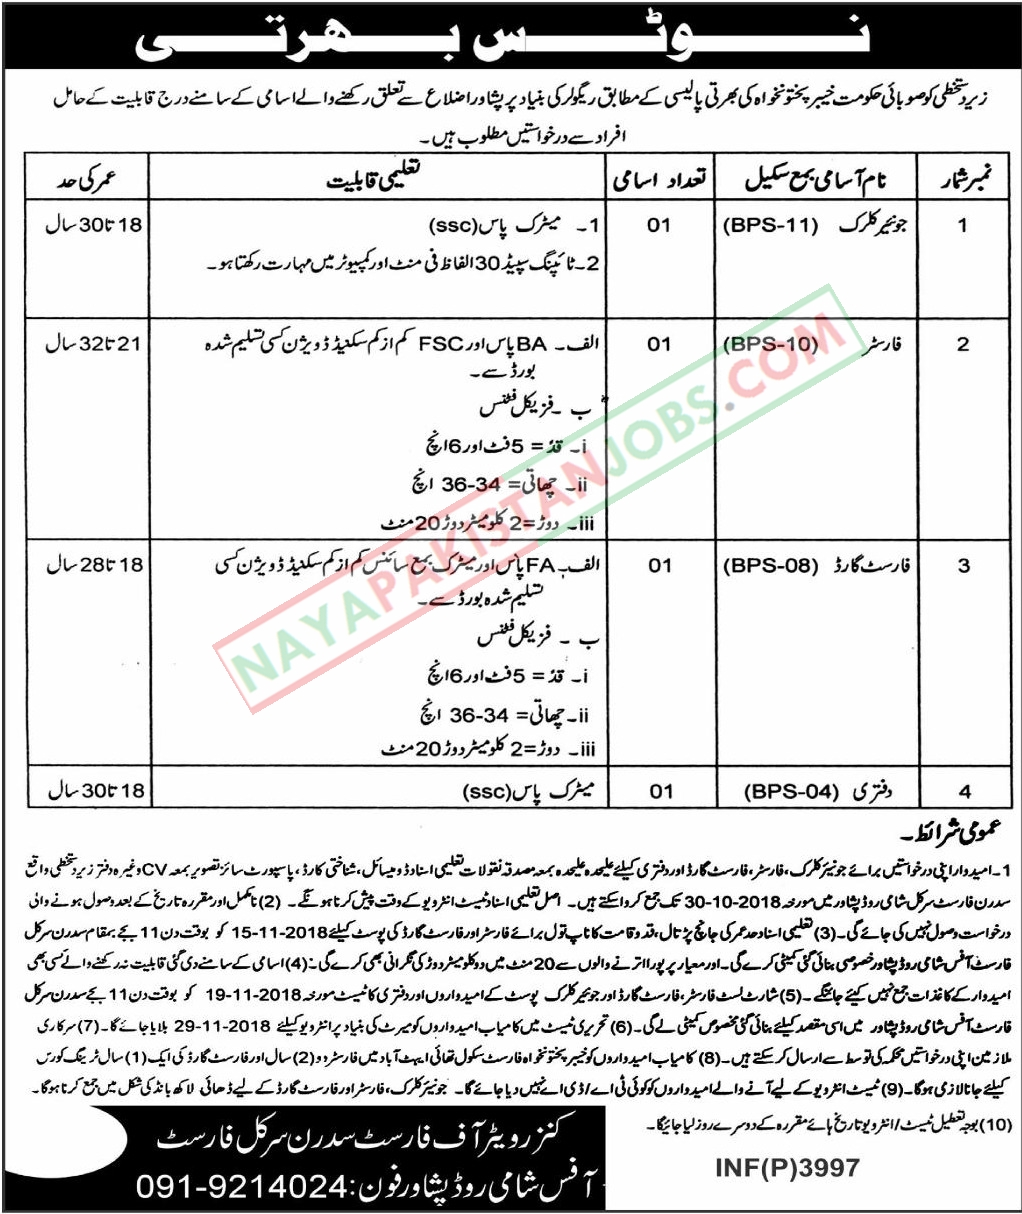 Latest Vacancies Announced in Forest Department Govt Of Khyber Pakhtunkhwa 14 Oct 2018 - Naya Pakistan